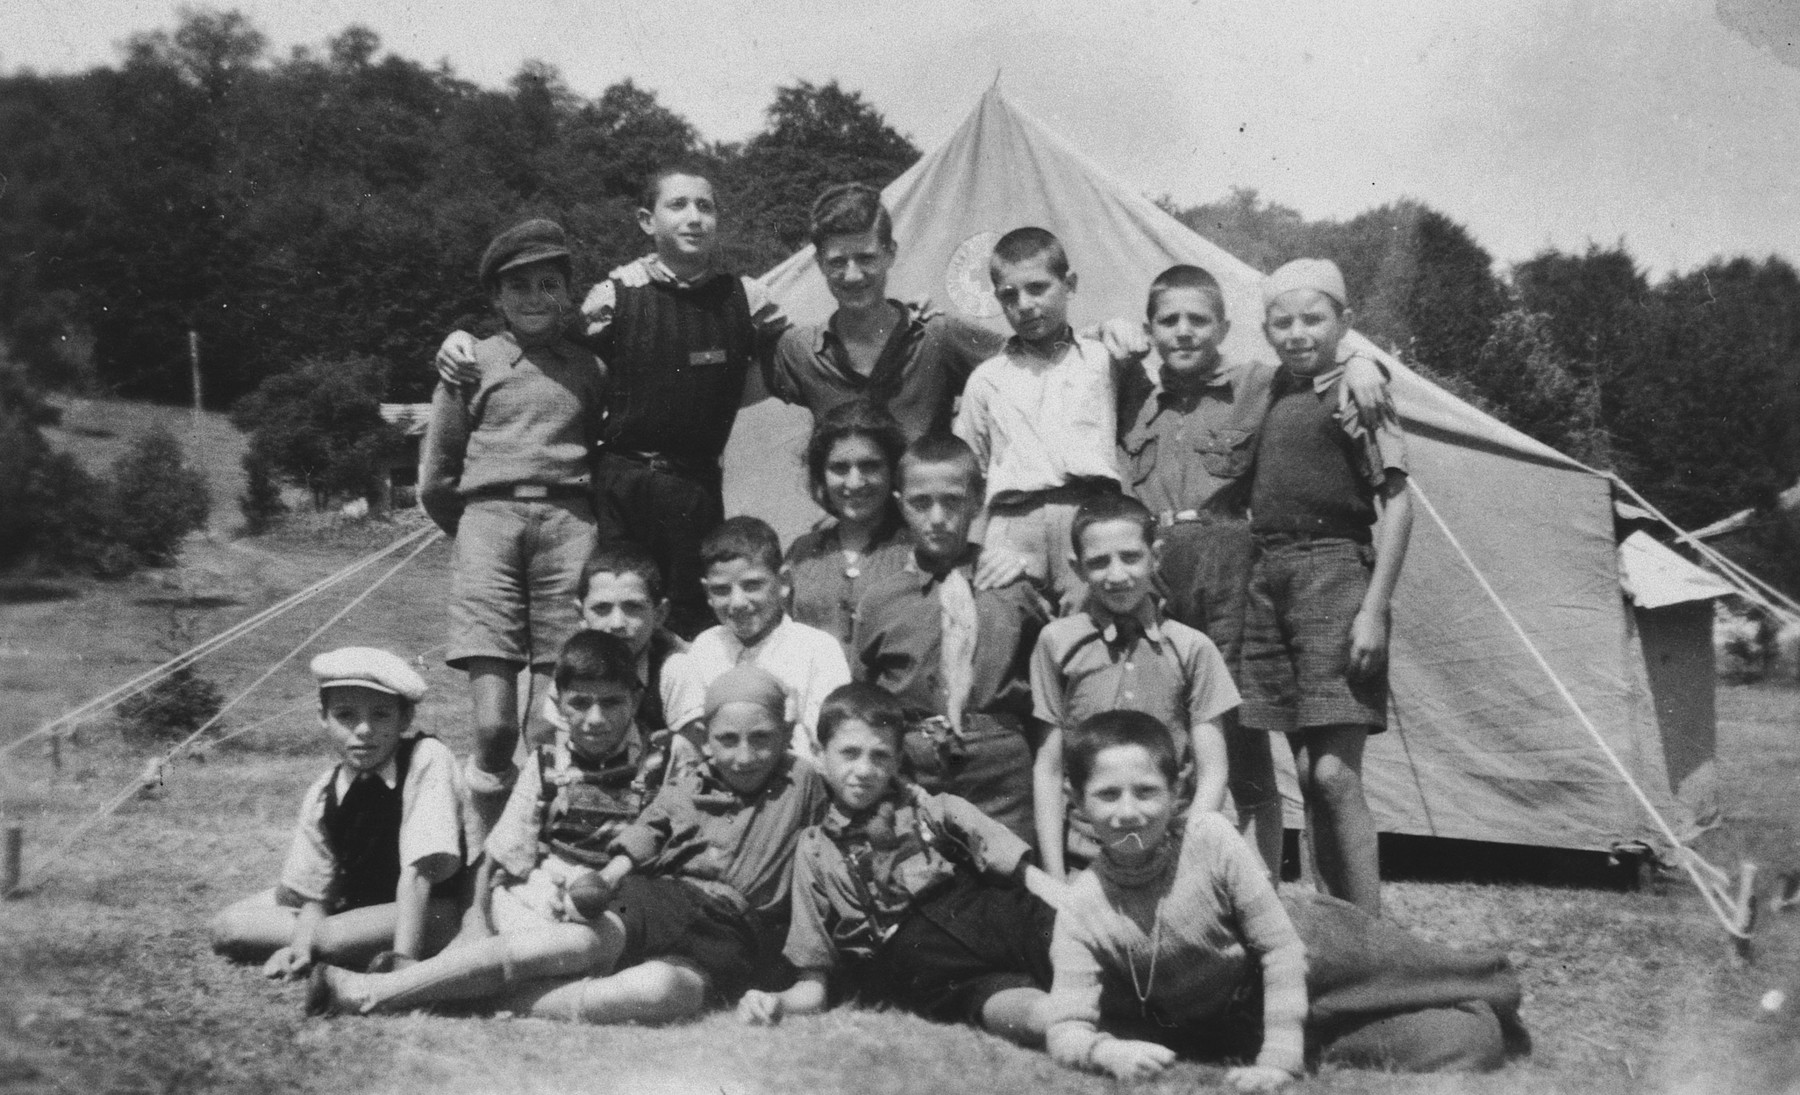 Bulgarian-Jewish children attend a summer camp sponsored by the Zionist movement, Hehalutz, in Plovdiv.